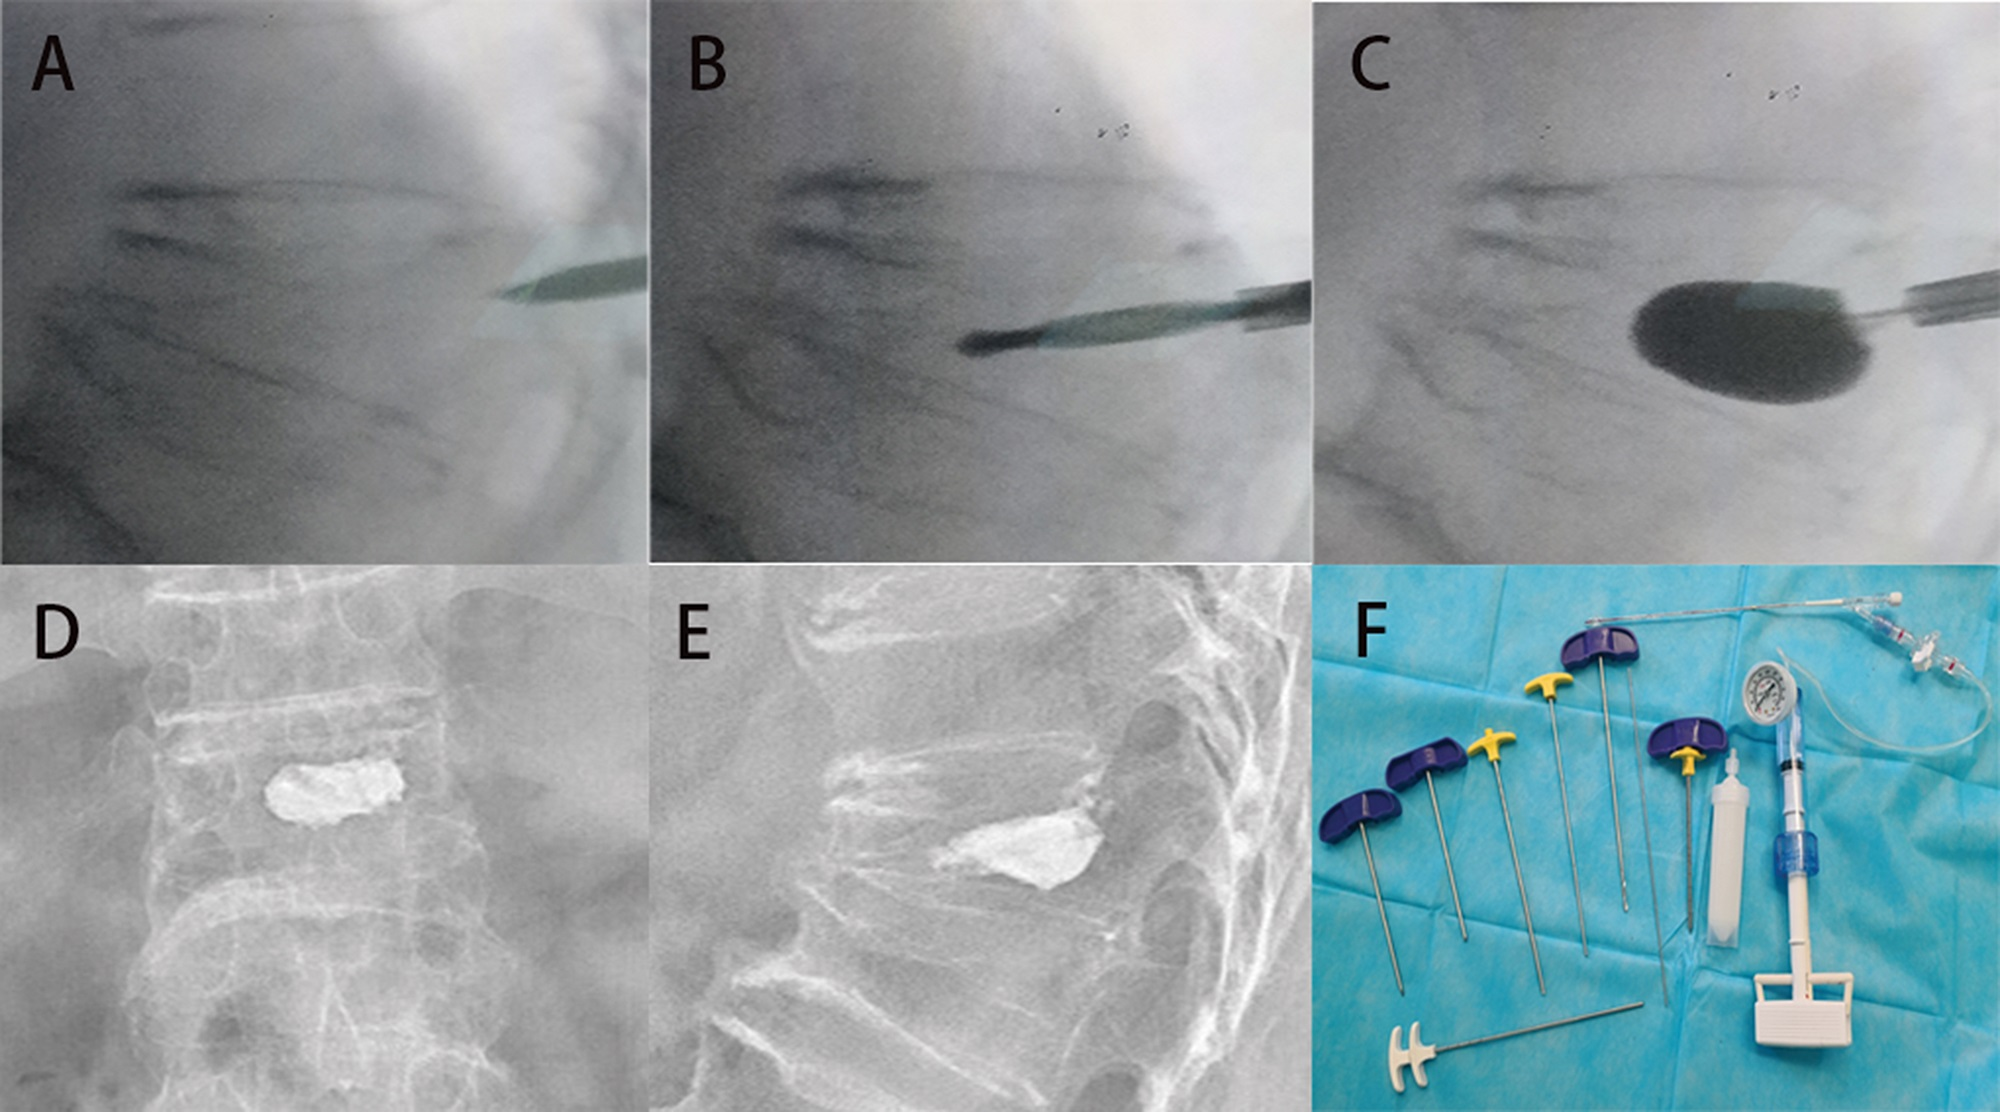 BTS surgical procedure for the treatment of a 75-year-old male patient with T12 vertebral body fracture. A, A puncture needle enters into the wedge T12 vertebra via the left pedicle. B, A bone drill was inserted in the fractured vertebral body to drill a circular hole as a working channel. C, An expandable cannula was inserted into the fractured vertebral body, and the balloon was slowly inflated. D and E, Posterior-anterior and lateral X-ray films after the BTS surgical procedure. F, The BTS instruments.